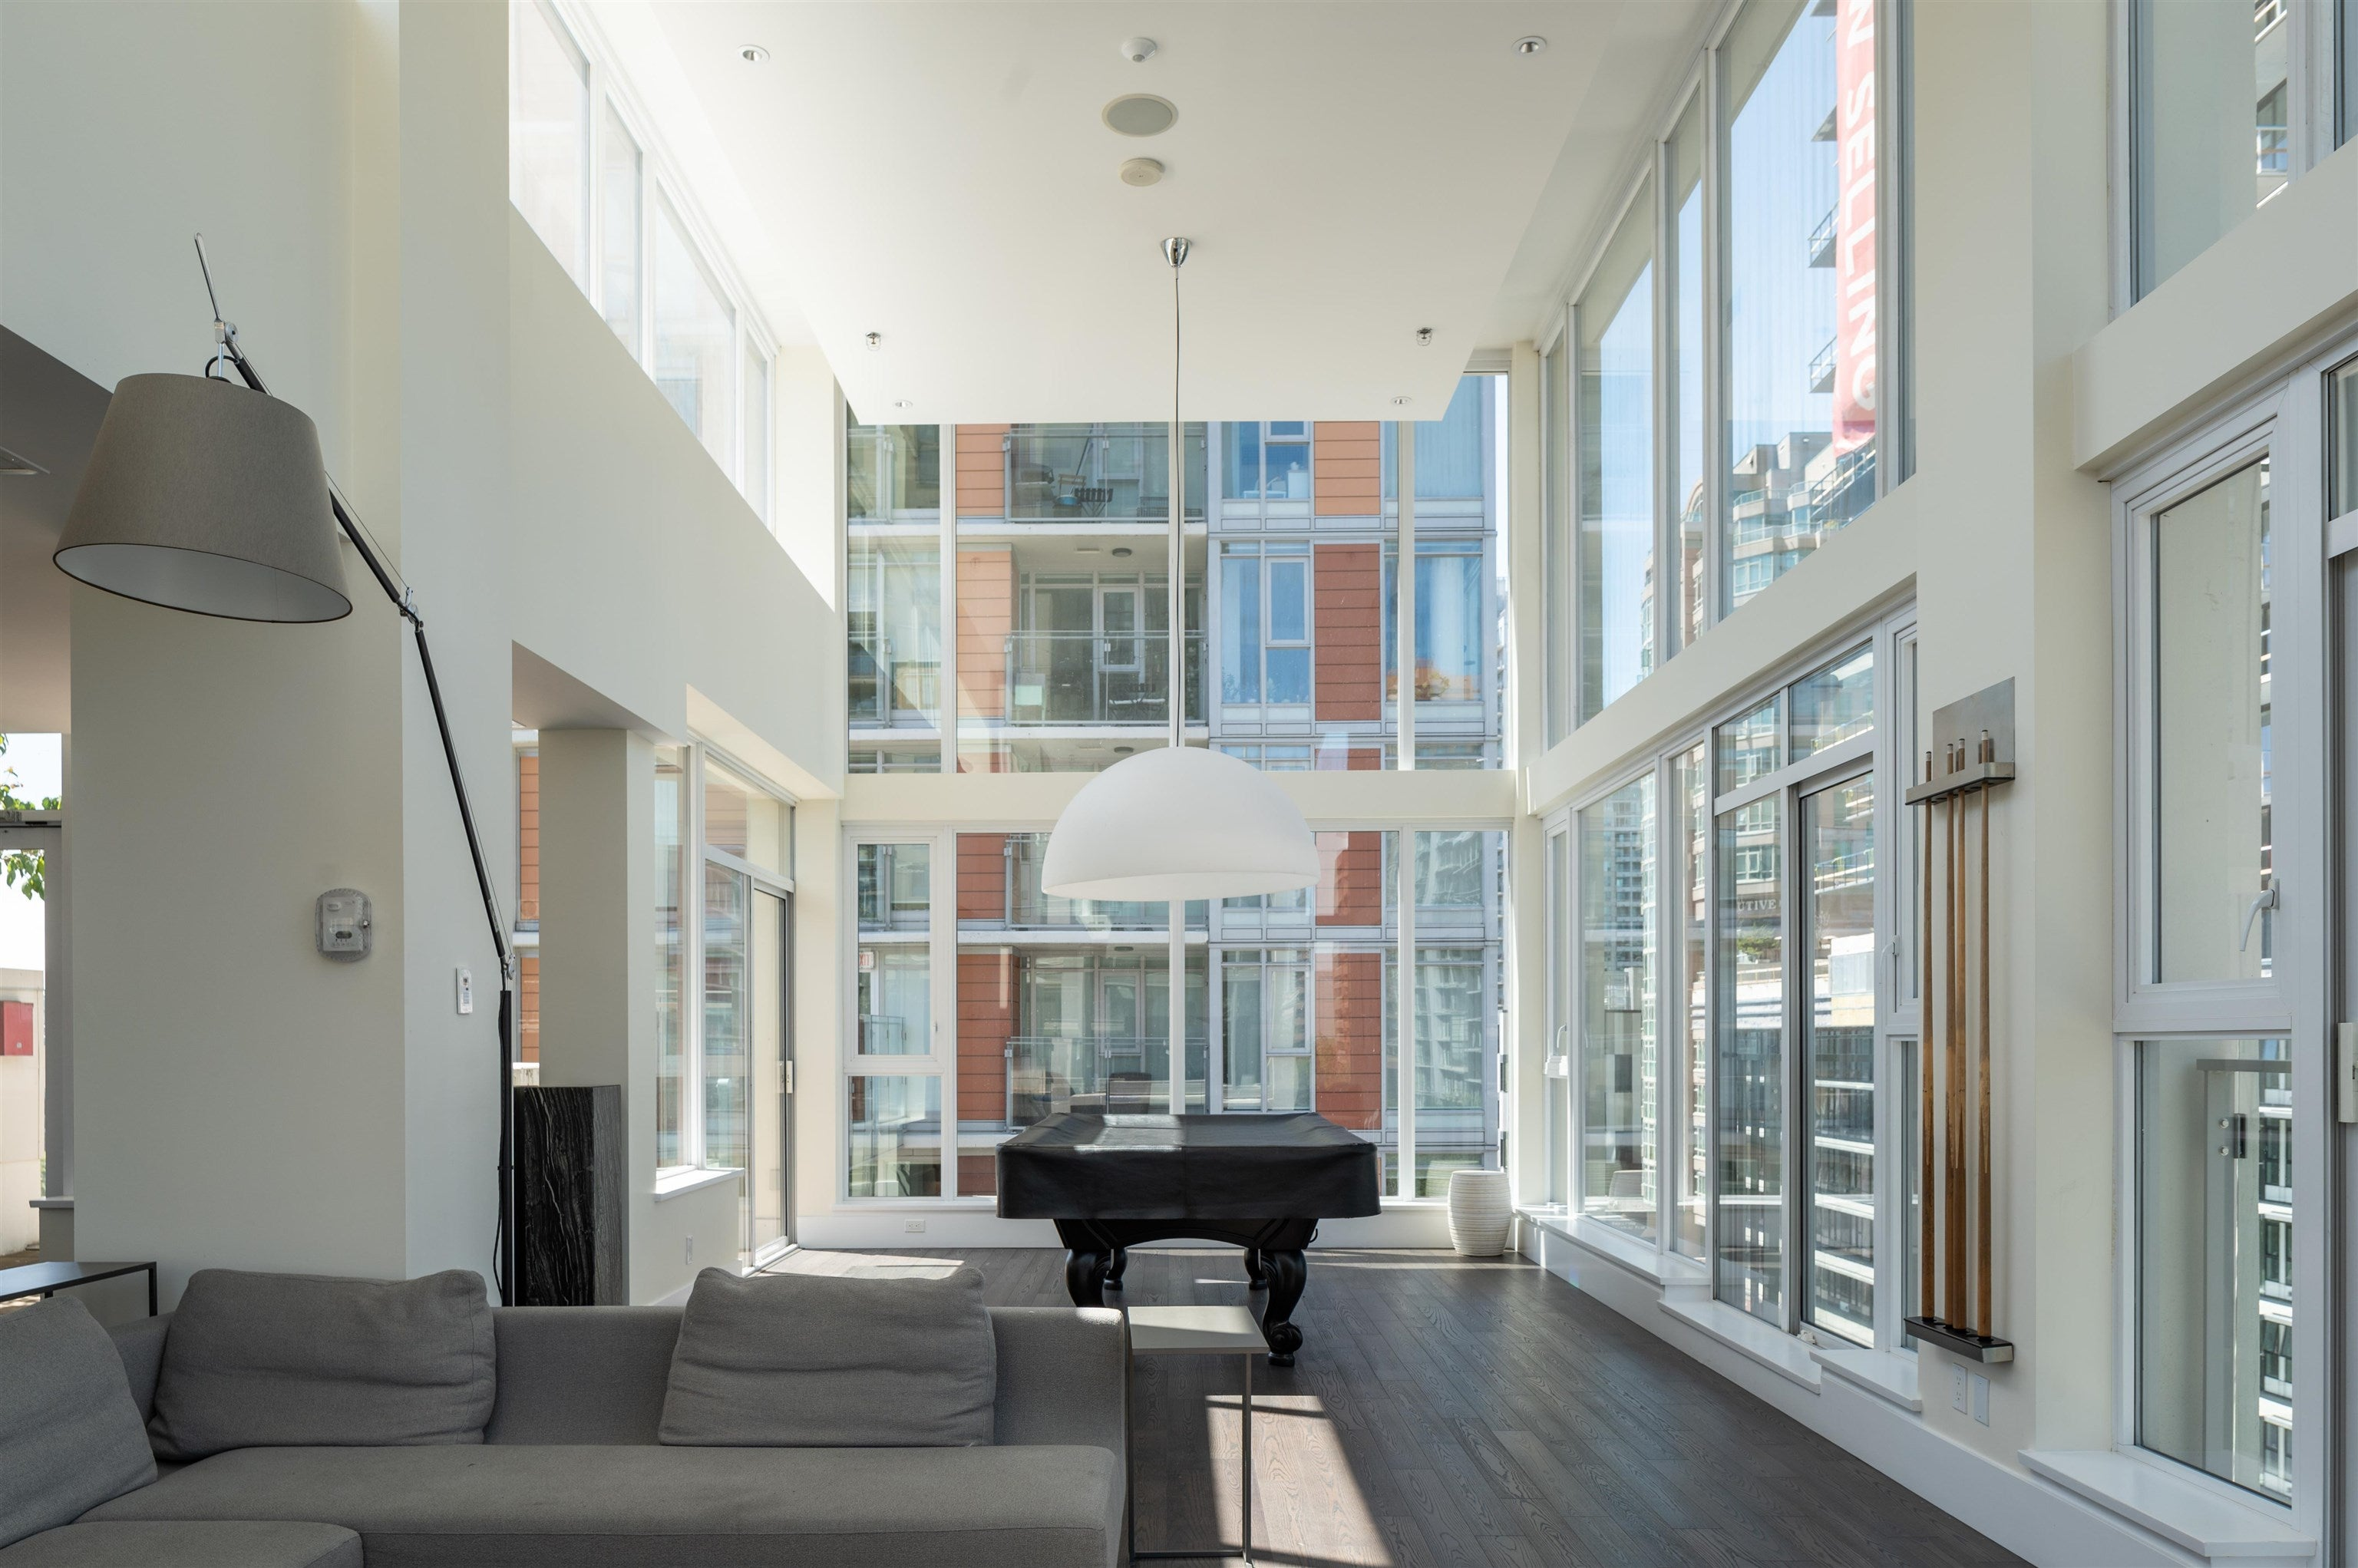 306 1351 CONTINENTAL STREET - Downtown VW Apartment/Condo for sale, 2 Bedrooms (R2617899) - #19